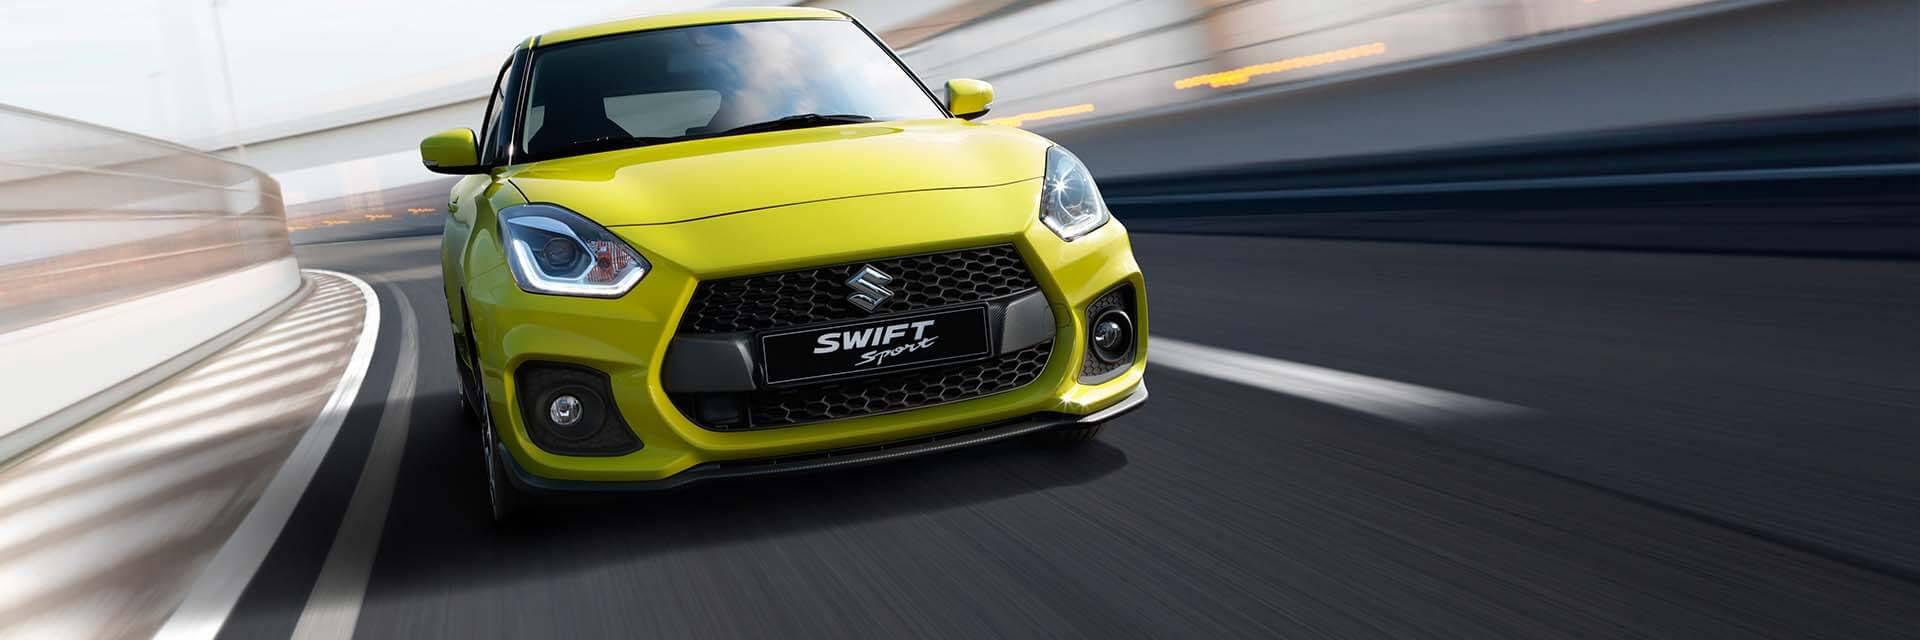 Swift Sport Overview 3